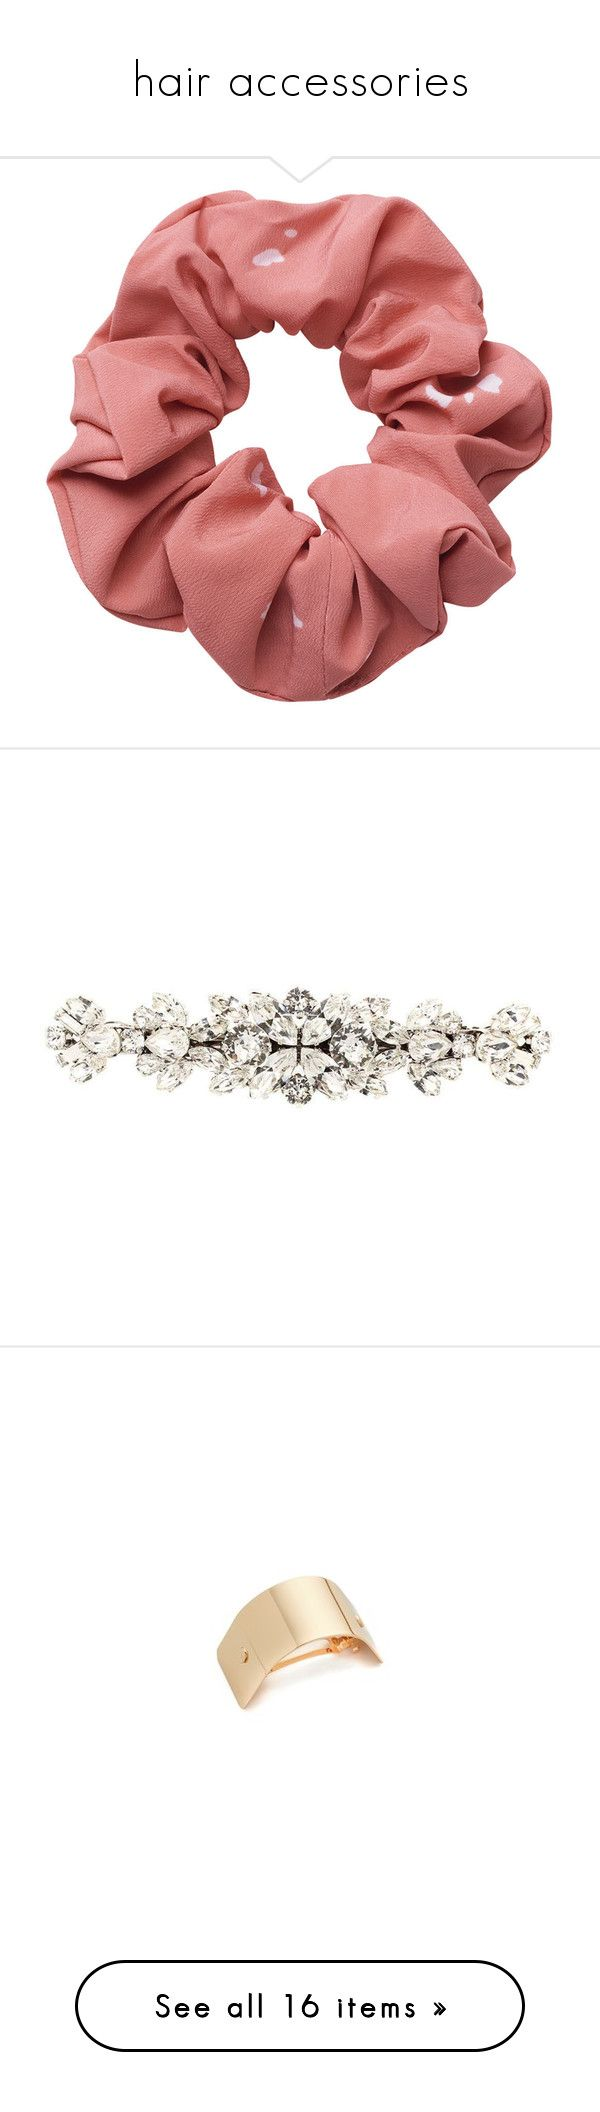 """""""hair accessories"""" by whitesandprincess ❤ liked on Polyvore featuring accessories, hair accessories, hair, scrunchie hair accessories, jewelry, hats, white, white hair accessories, dolce gabbana hair accessories and silver hair accessories"""